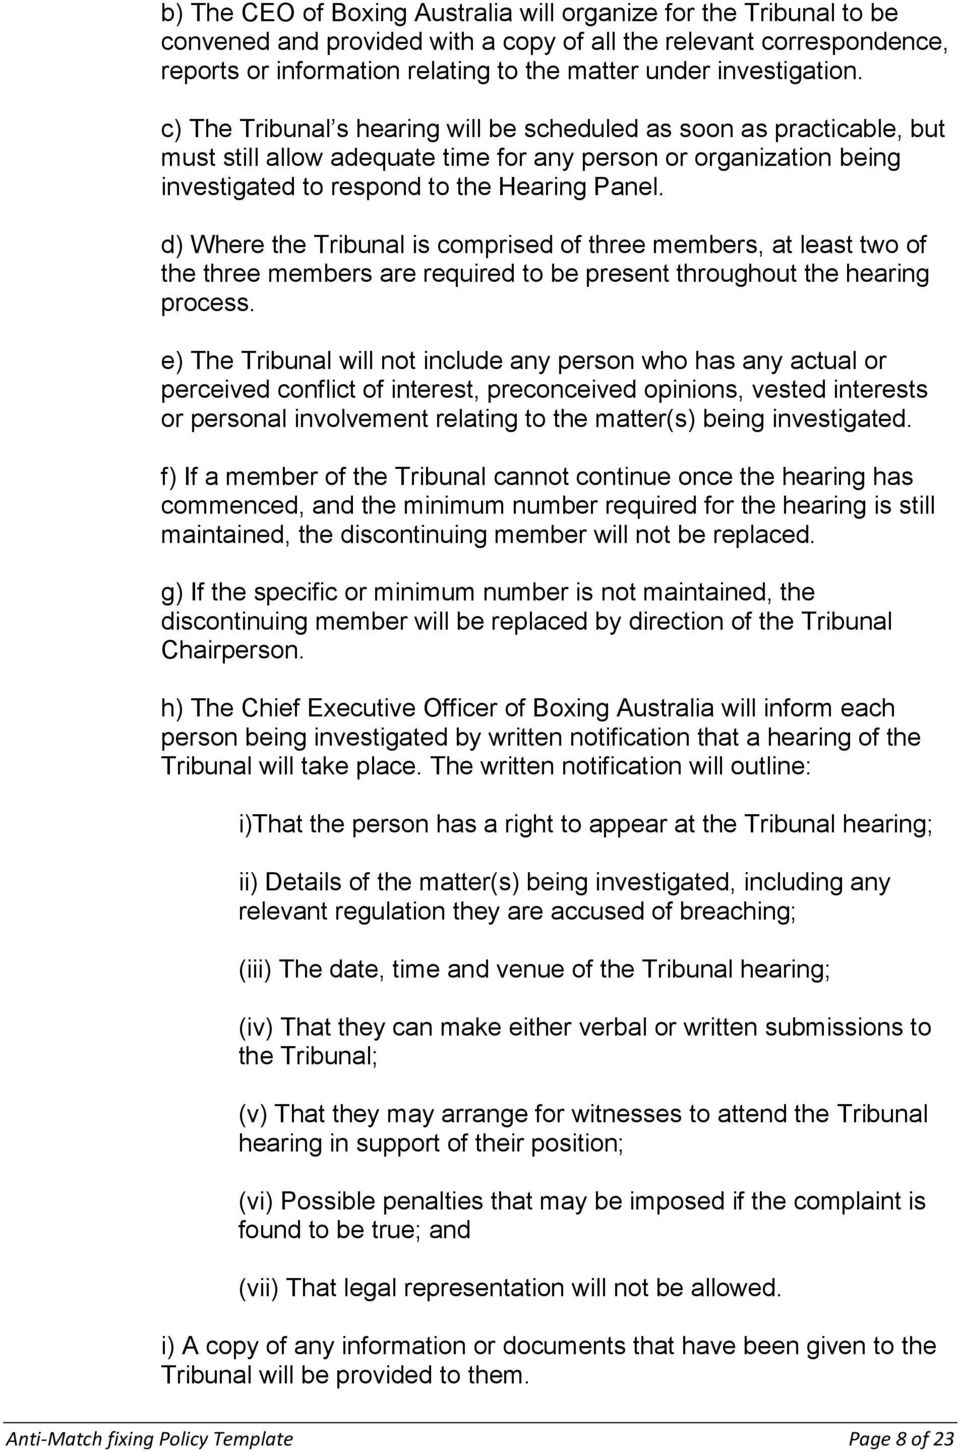 d) Where the Tribunal is comprised of three members, at least two of the three members are required to be present throughout the hearing process.